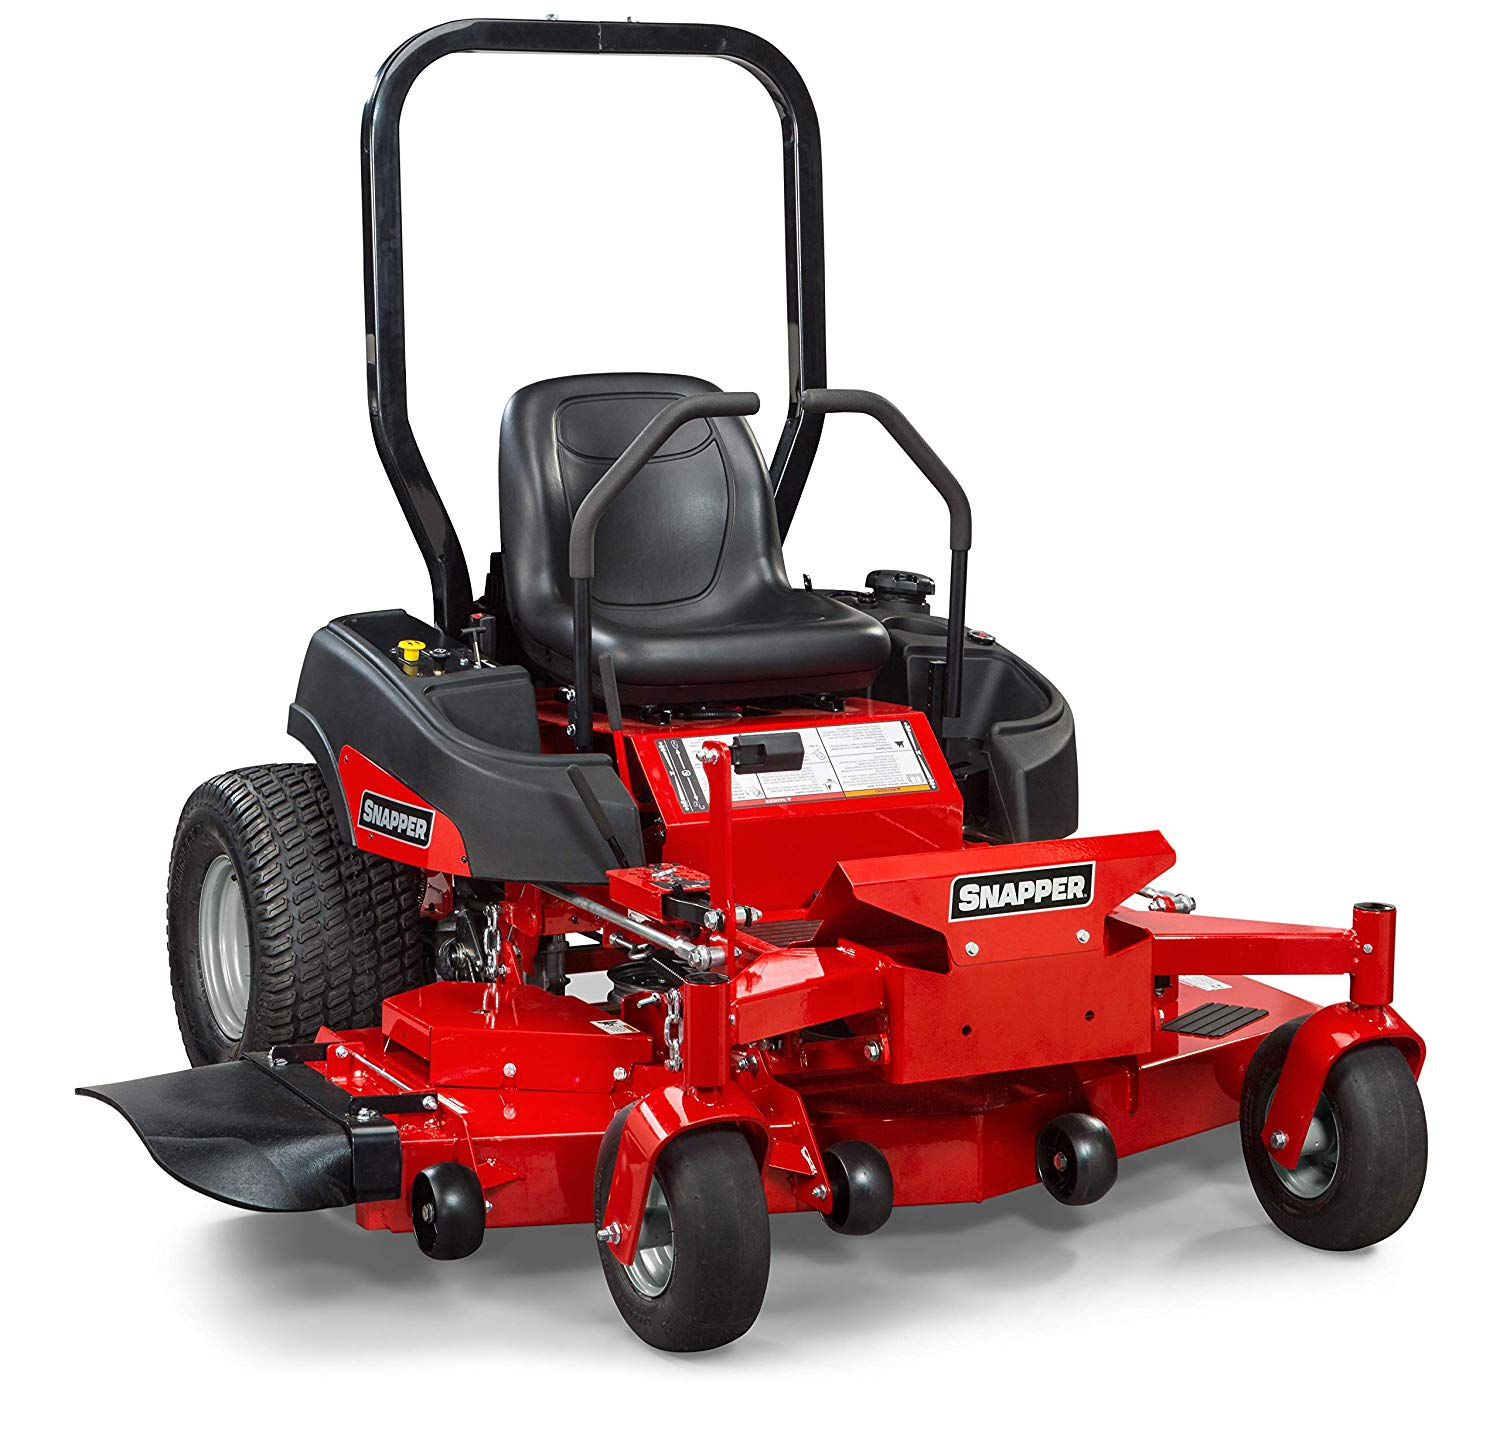 Get Quotations · Snapper 5901557 560z Lawn Mower Zero Turn, Red